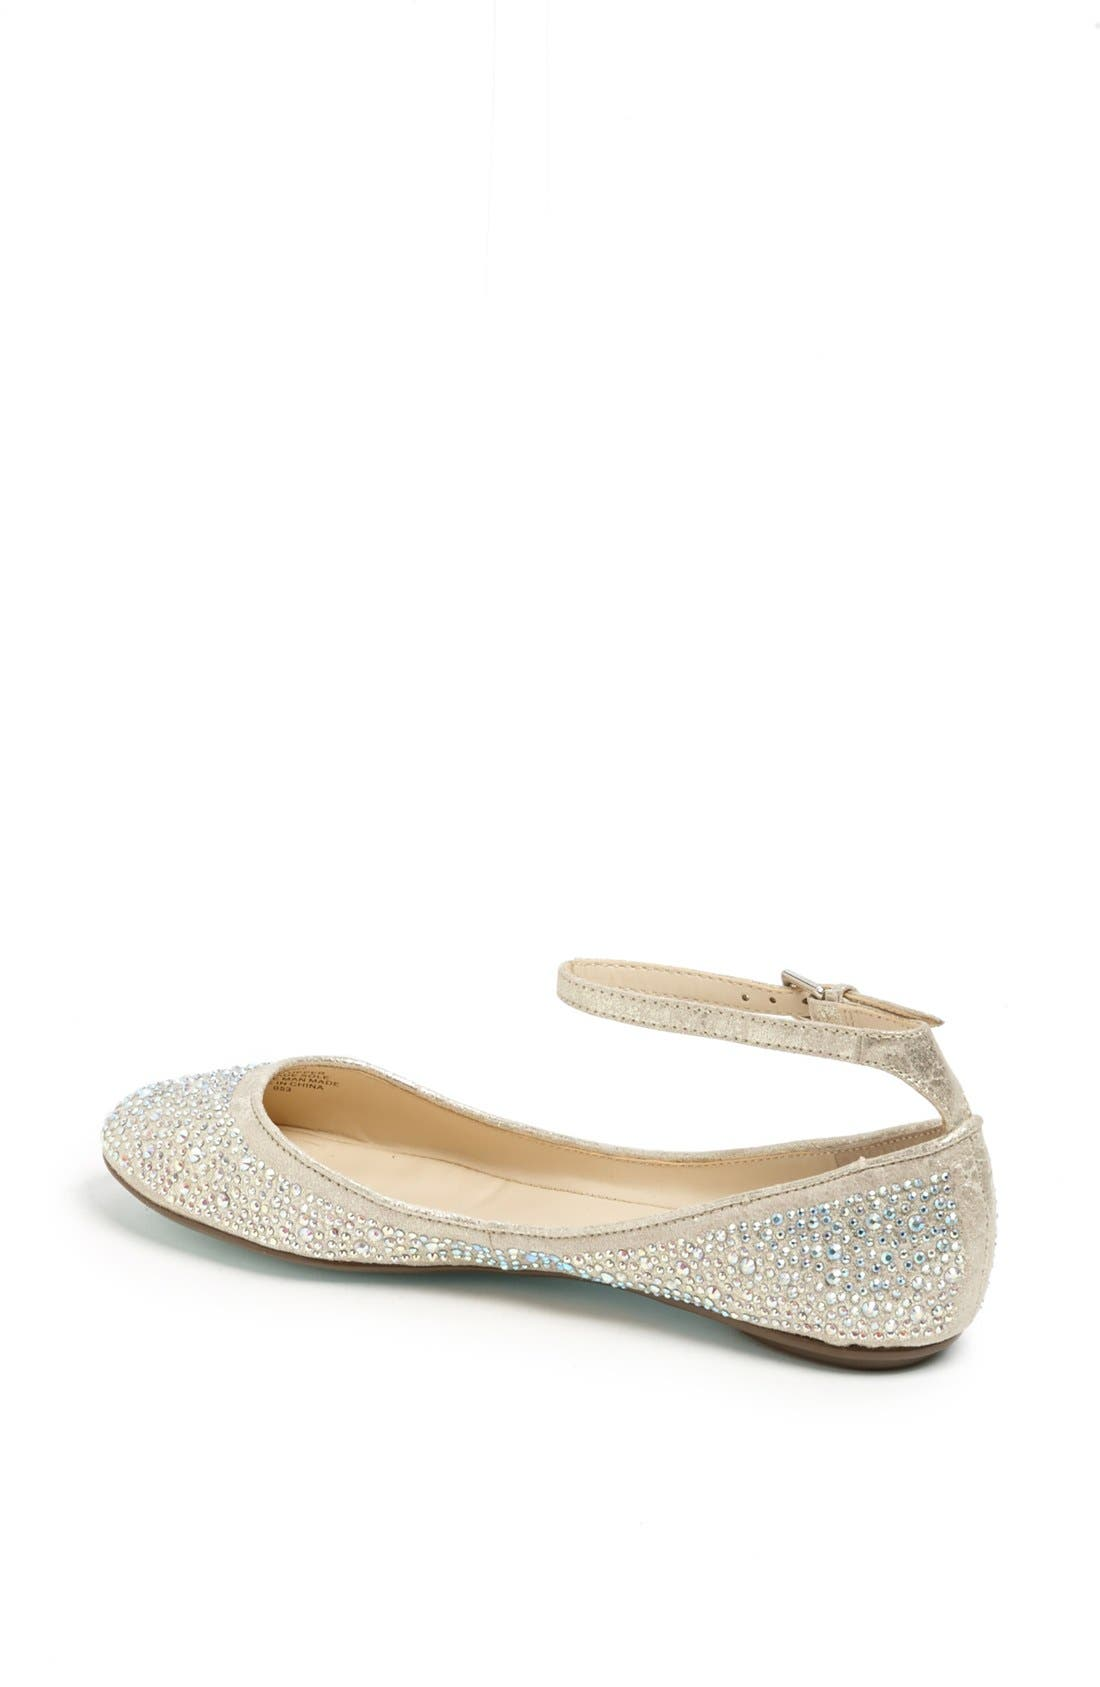 Alternate Image 2  - Betsey Johnson 'Joy' Ankle Strap Crystal Embellished Flat